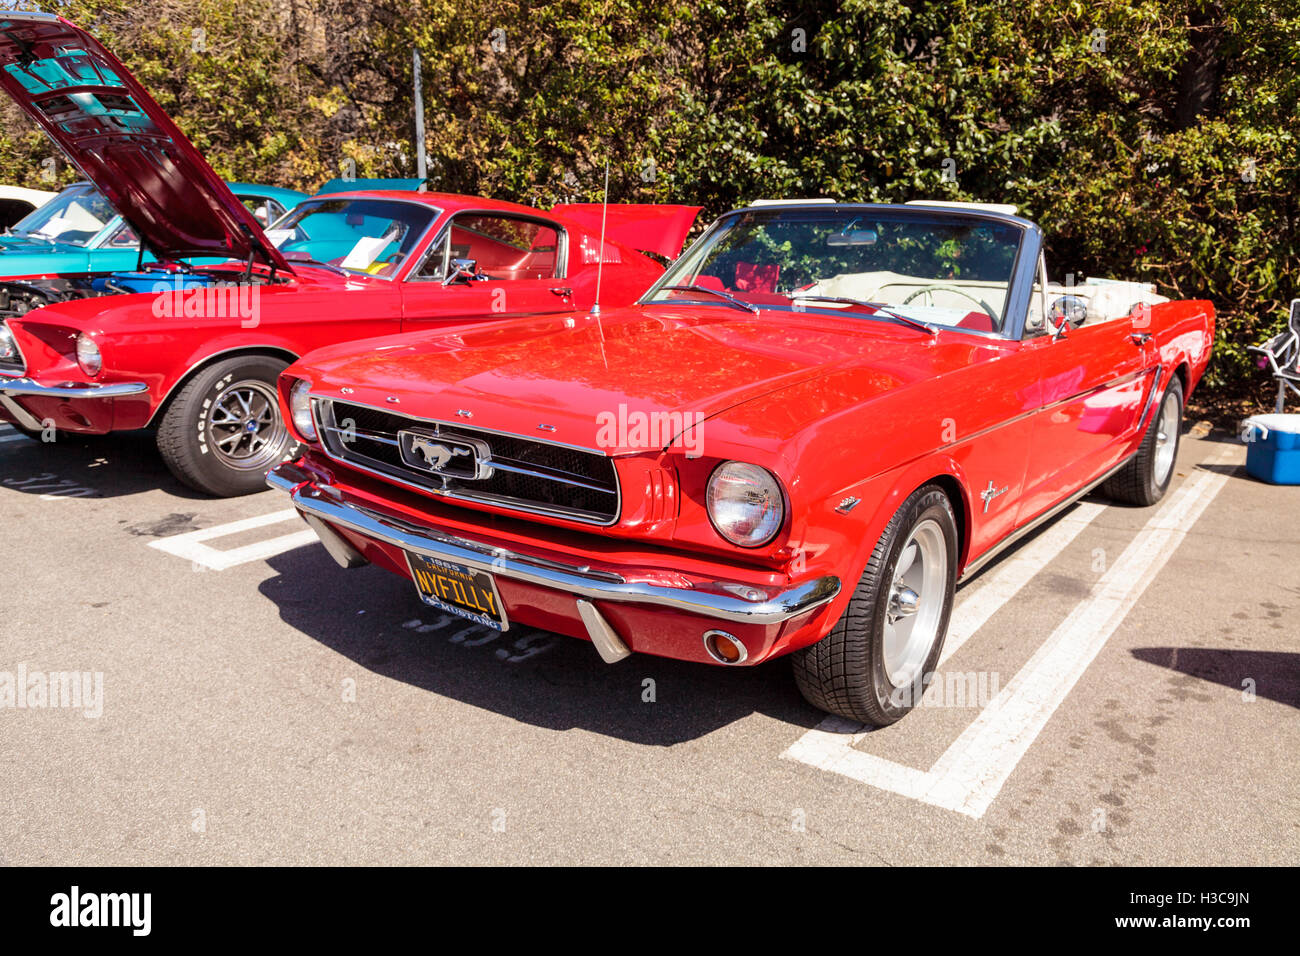 Laguna beach ca usa october 2 2016 red 1965 ford mustang